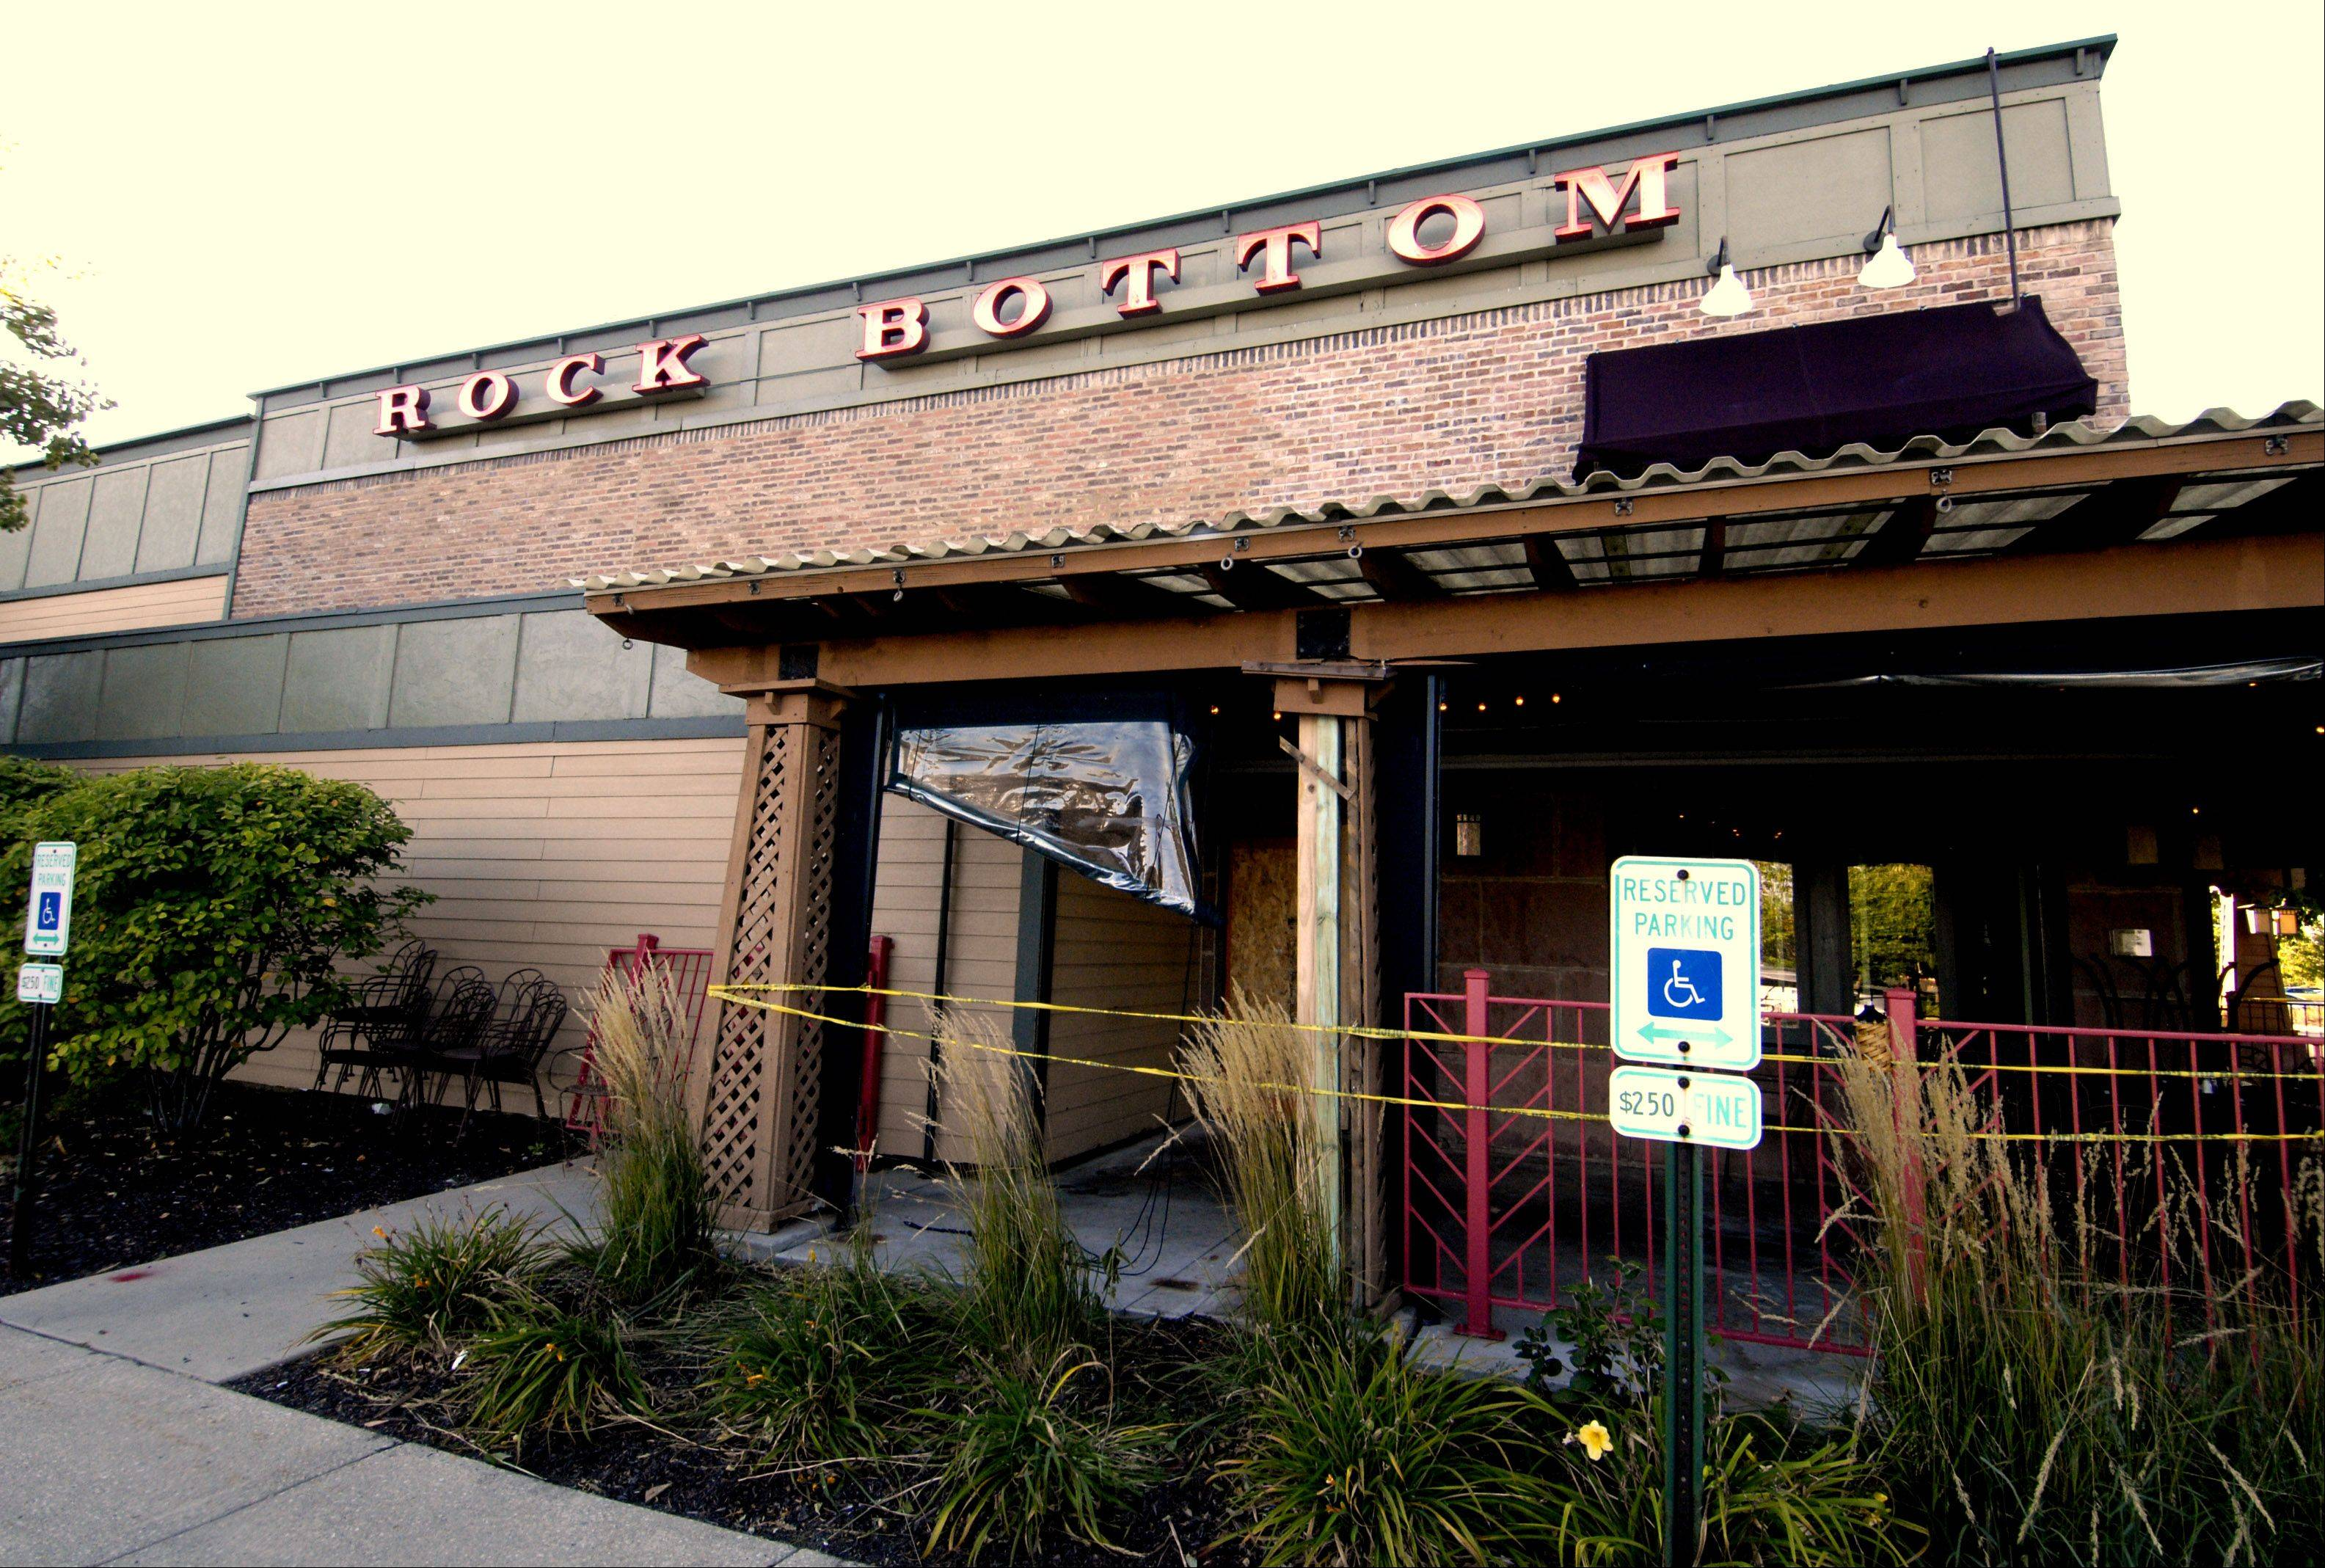 A car crashed into the outdoor dinning area of the Rock Bottom restaurant in Warrenville Wednesday afternoon. Five people were injured, two of them seriously, during the lunchtime crash.